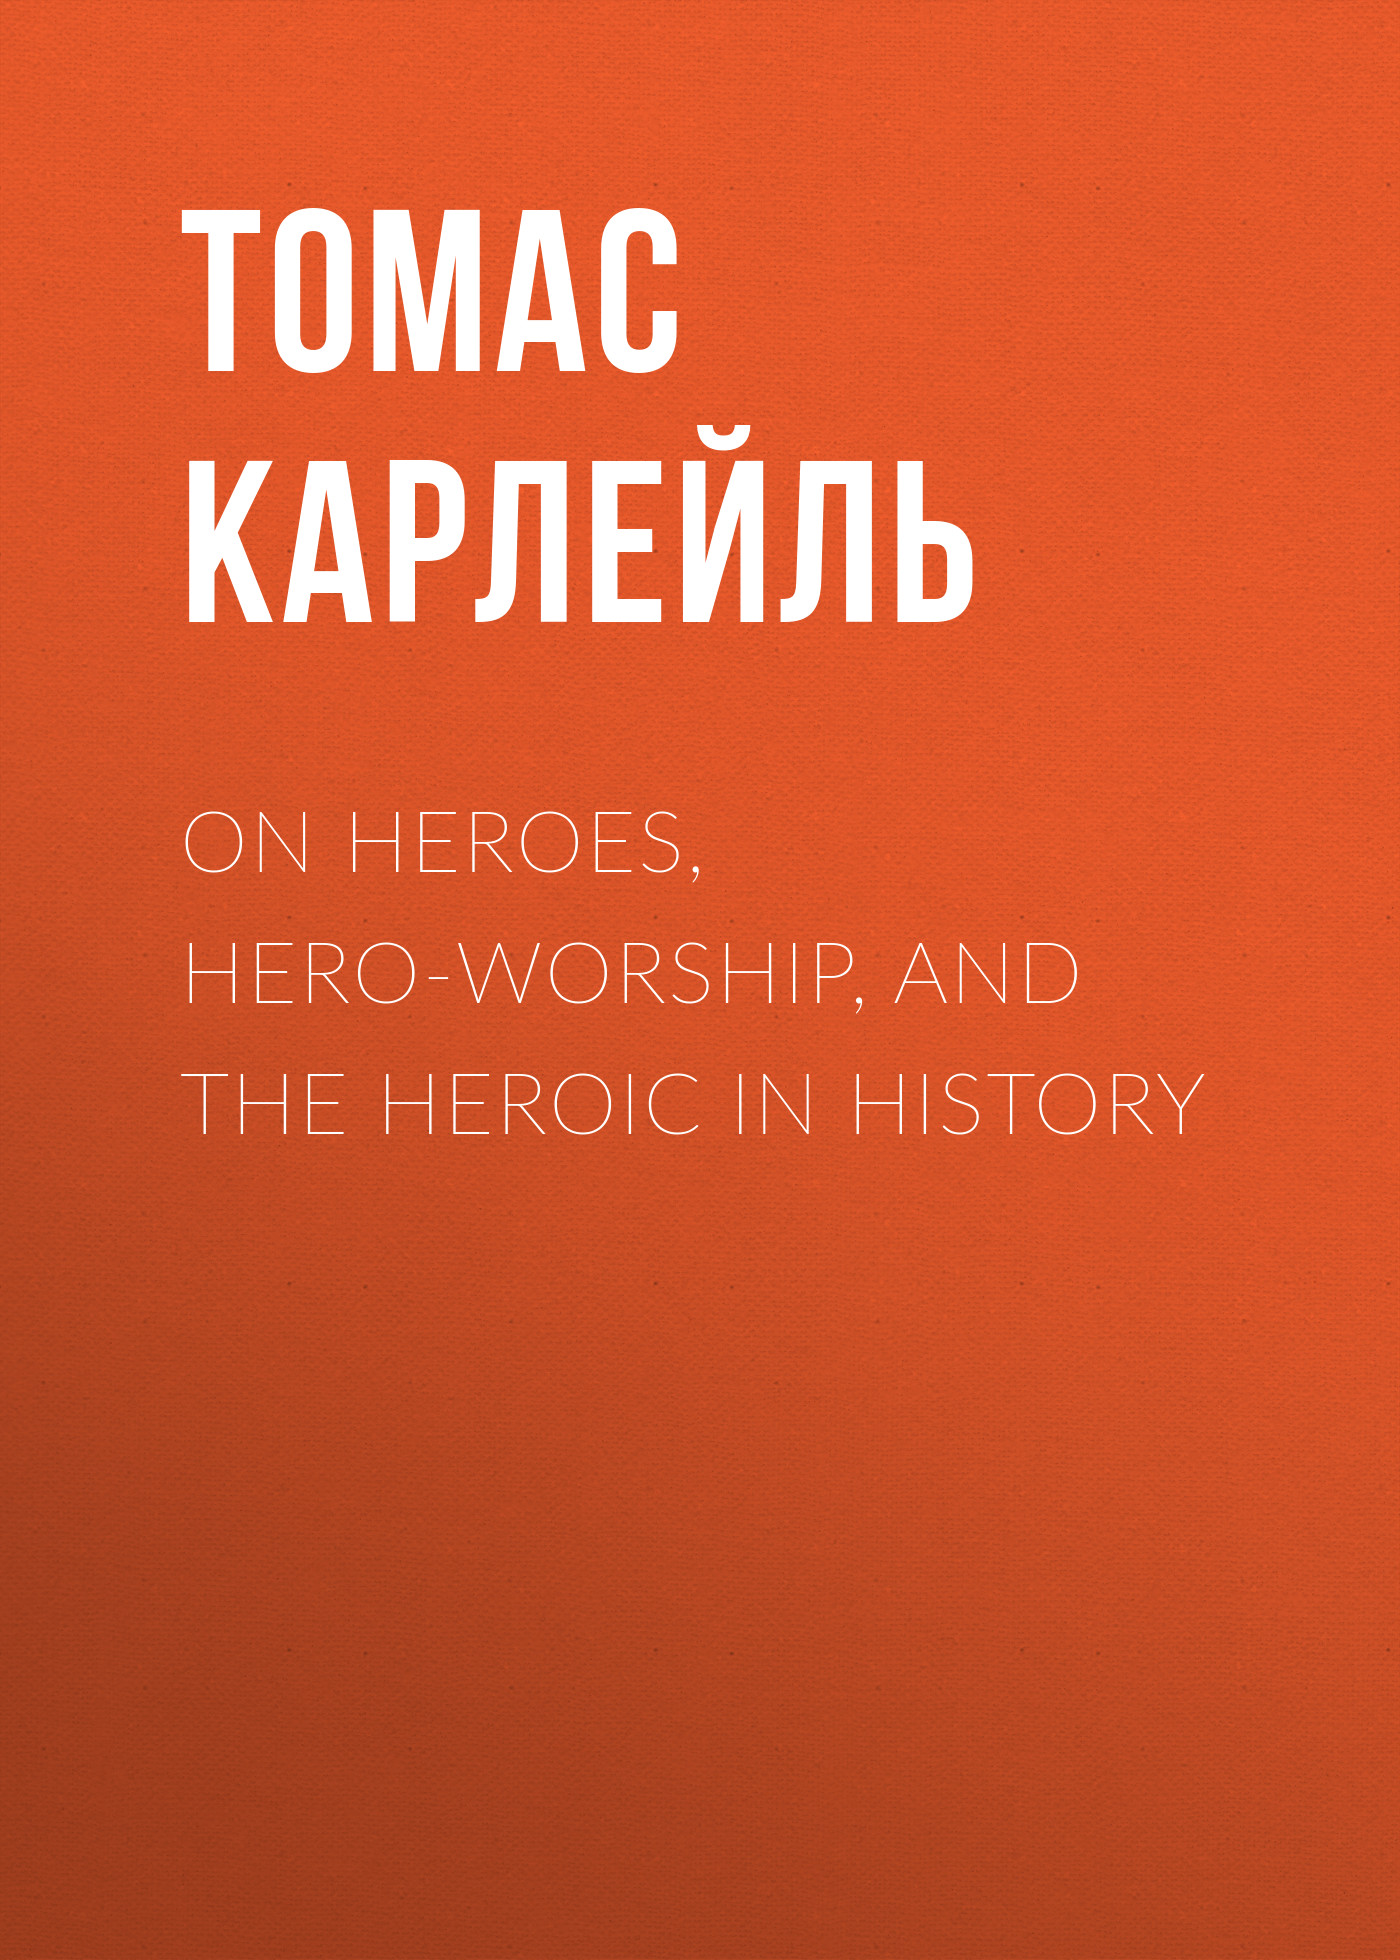 Томас Карлейль On Heroes, Hero-Worship, and the Heroic in History history heroes neil armstrong